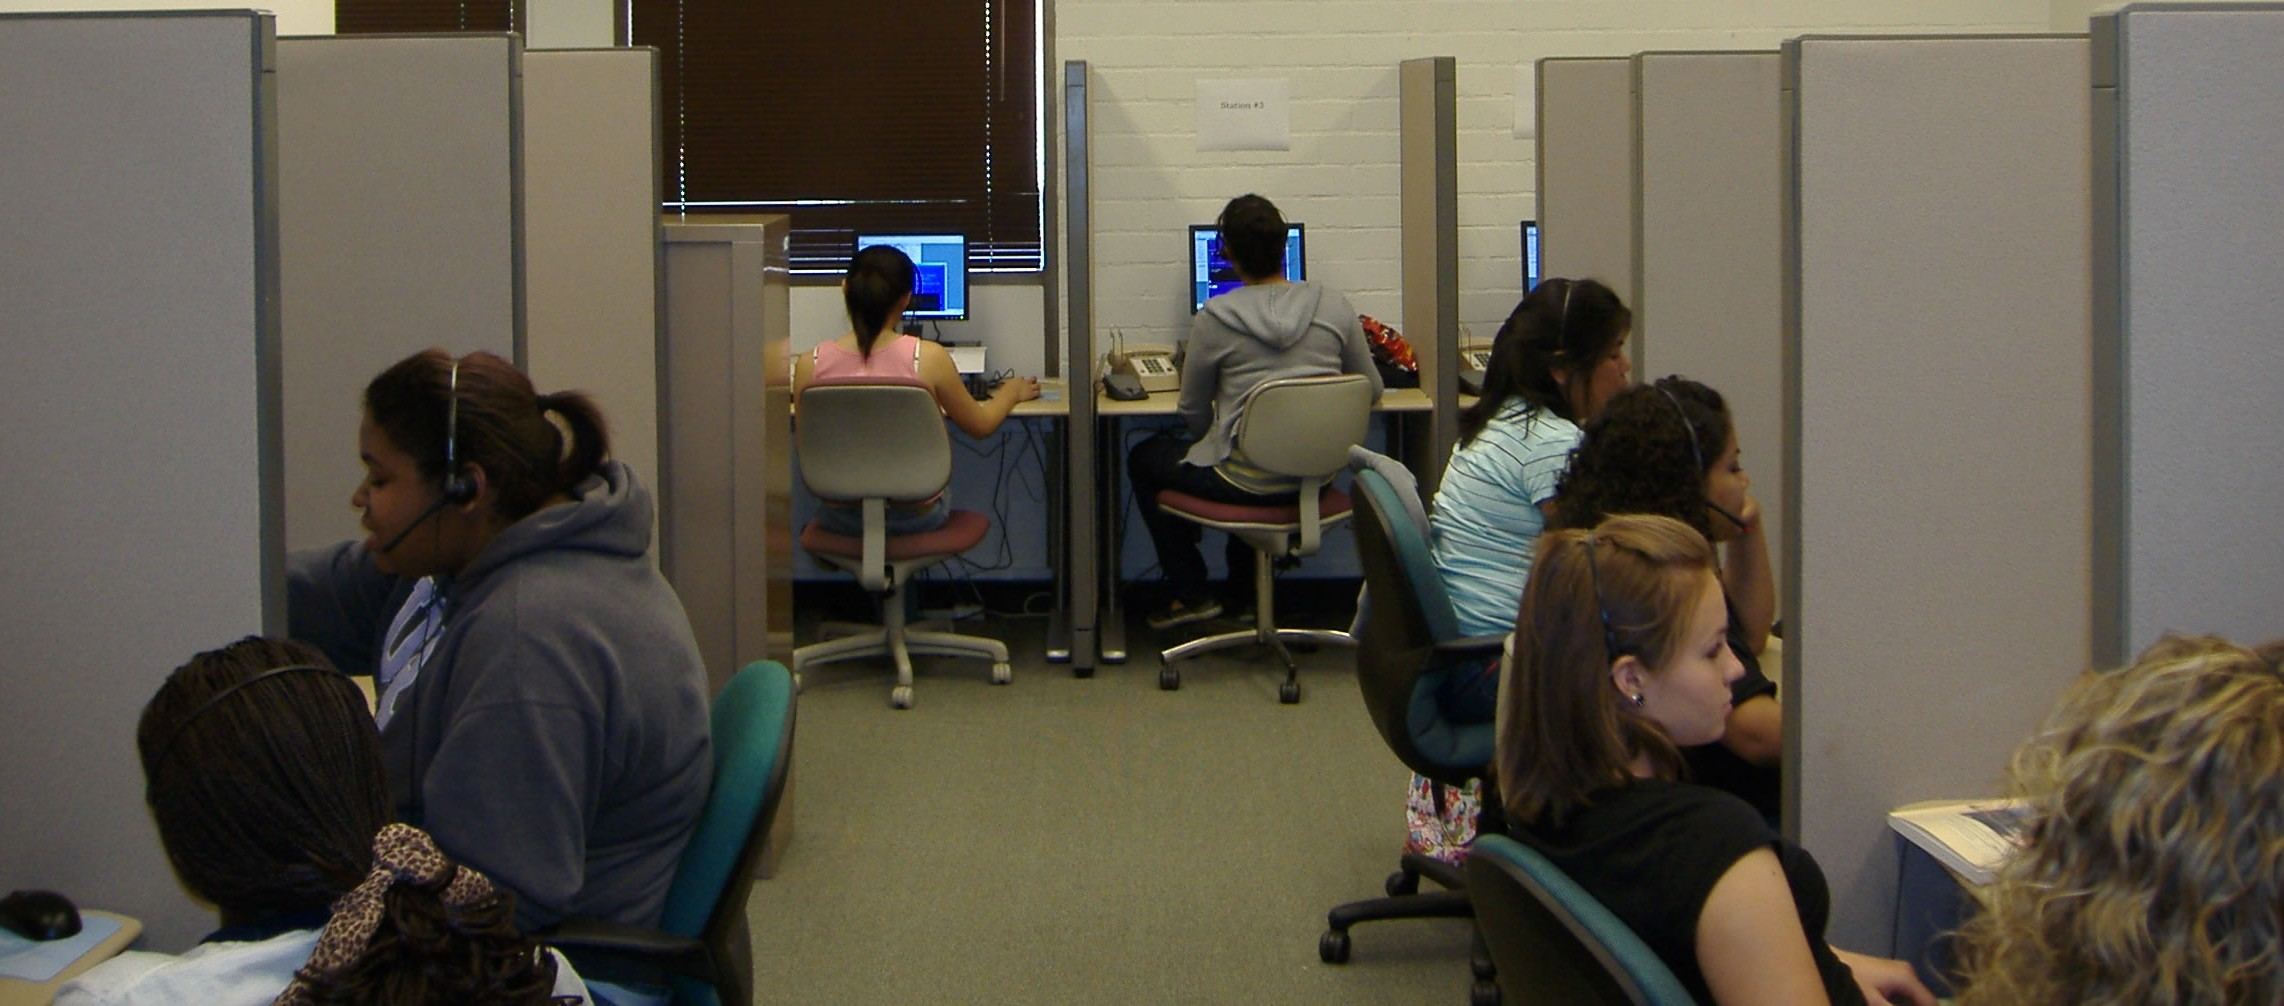 Interviewers work on a telephone survey in the 16-station CATI laboratory at the UCR SRC.